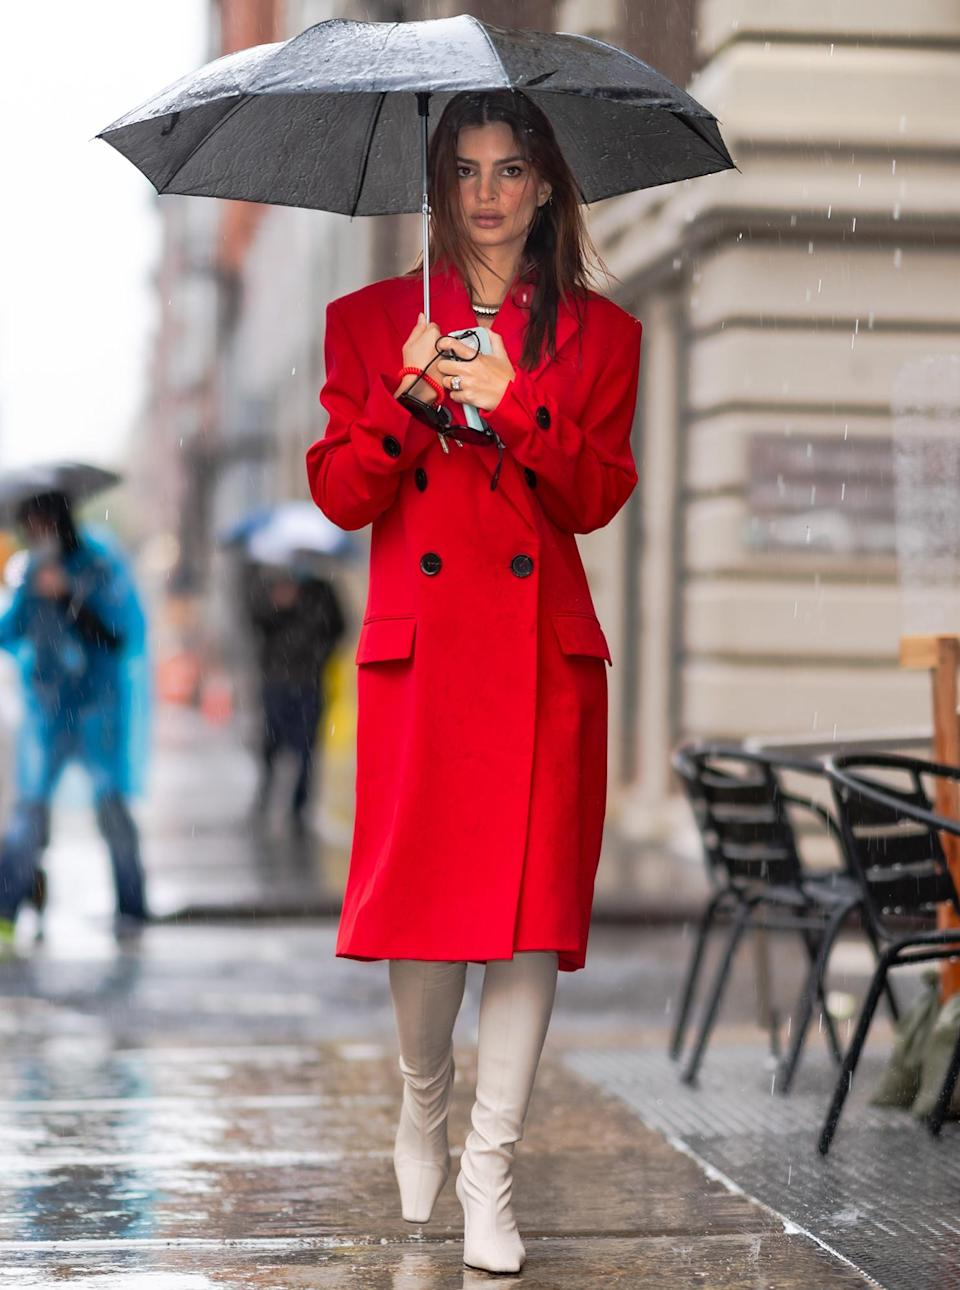 <p>Emily Ratajkowski braves the rain in an elegant red coat and white boots on Thursday in N.Y.C. </p>